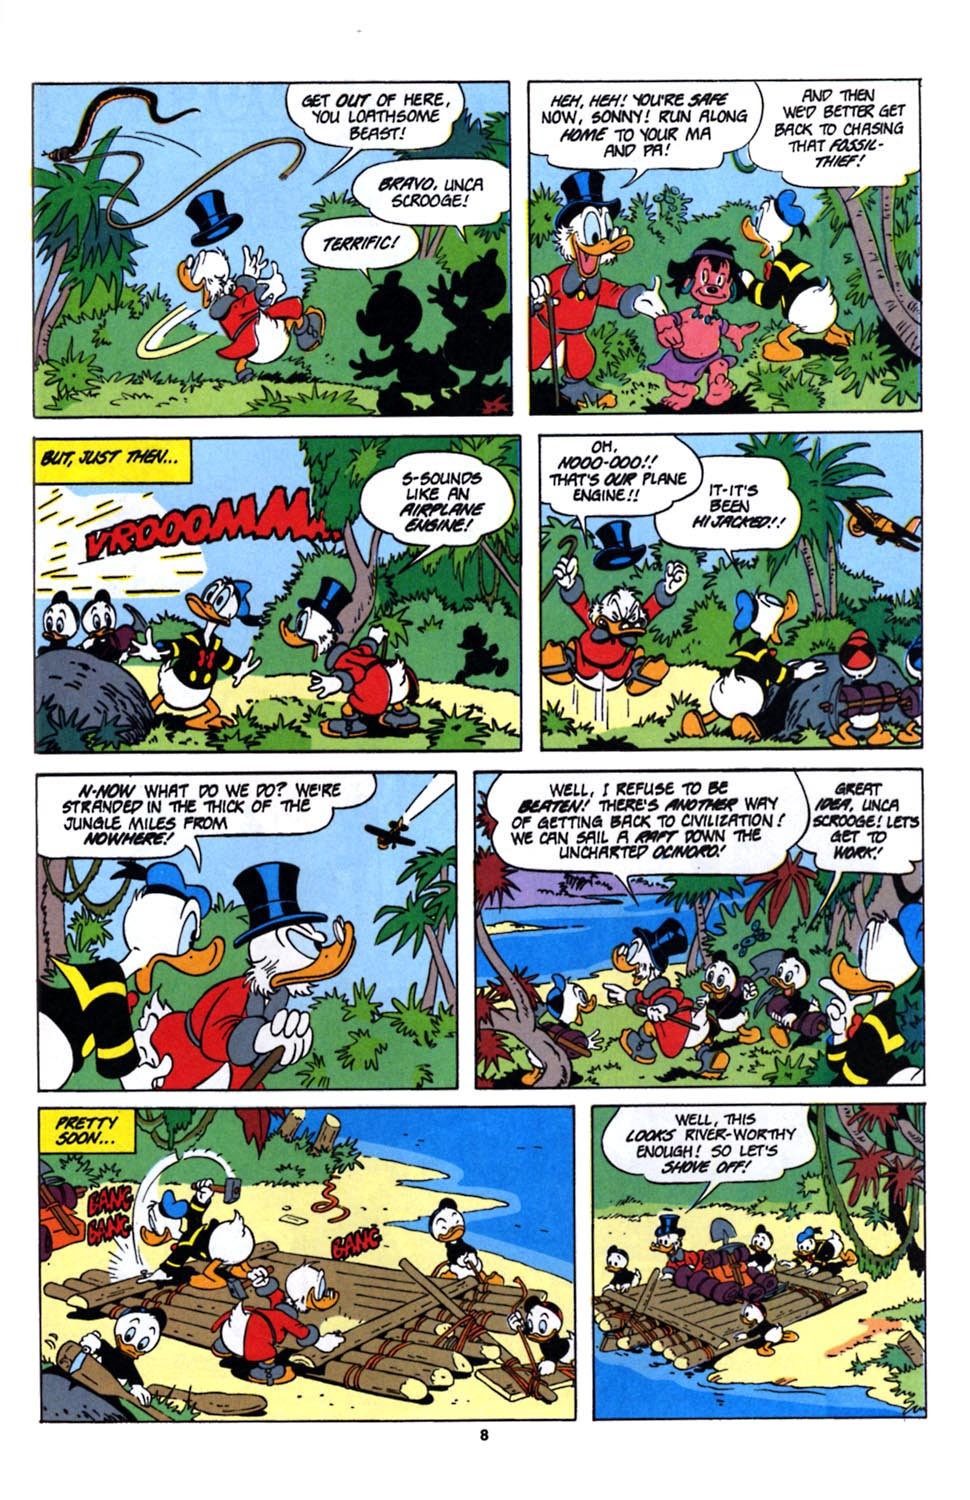 inefree.com/uncle-scrooge #162 - English 24